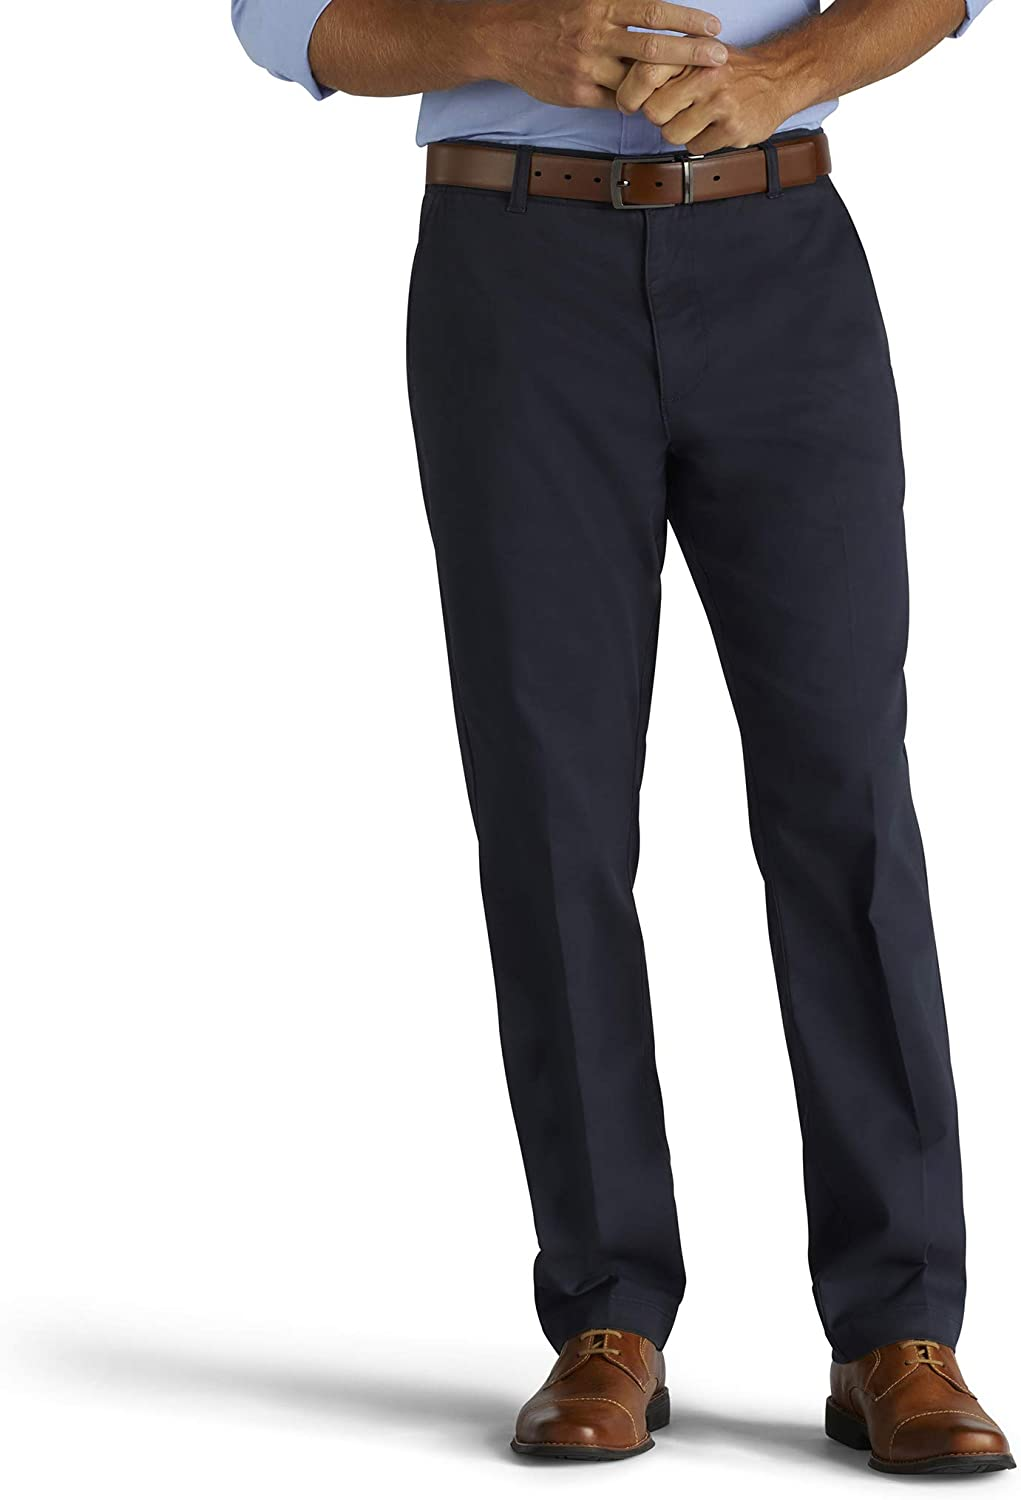 Lee Bargain sale Men's Performance Series Relaxed Comfort Extreme Ranking TOP12 Pant